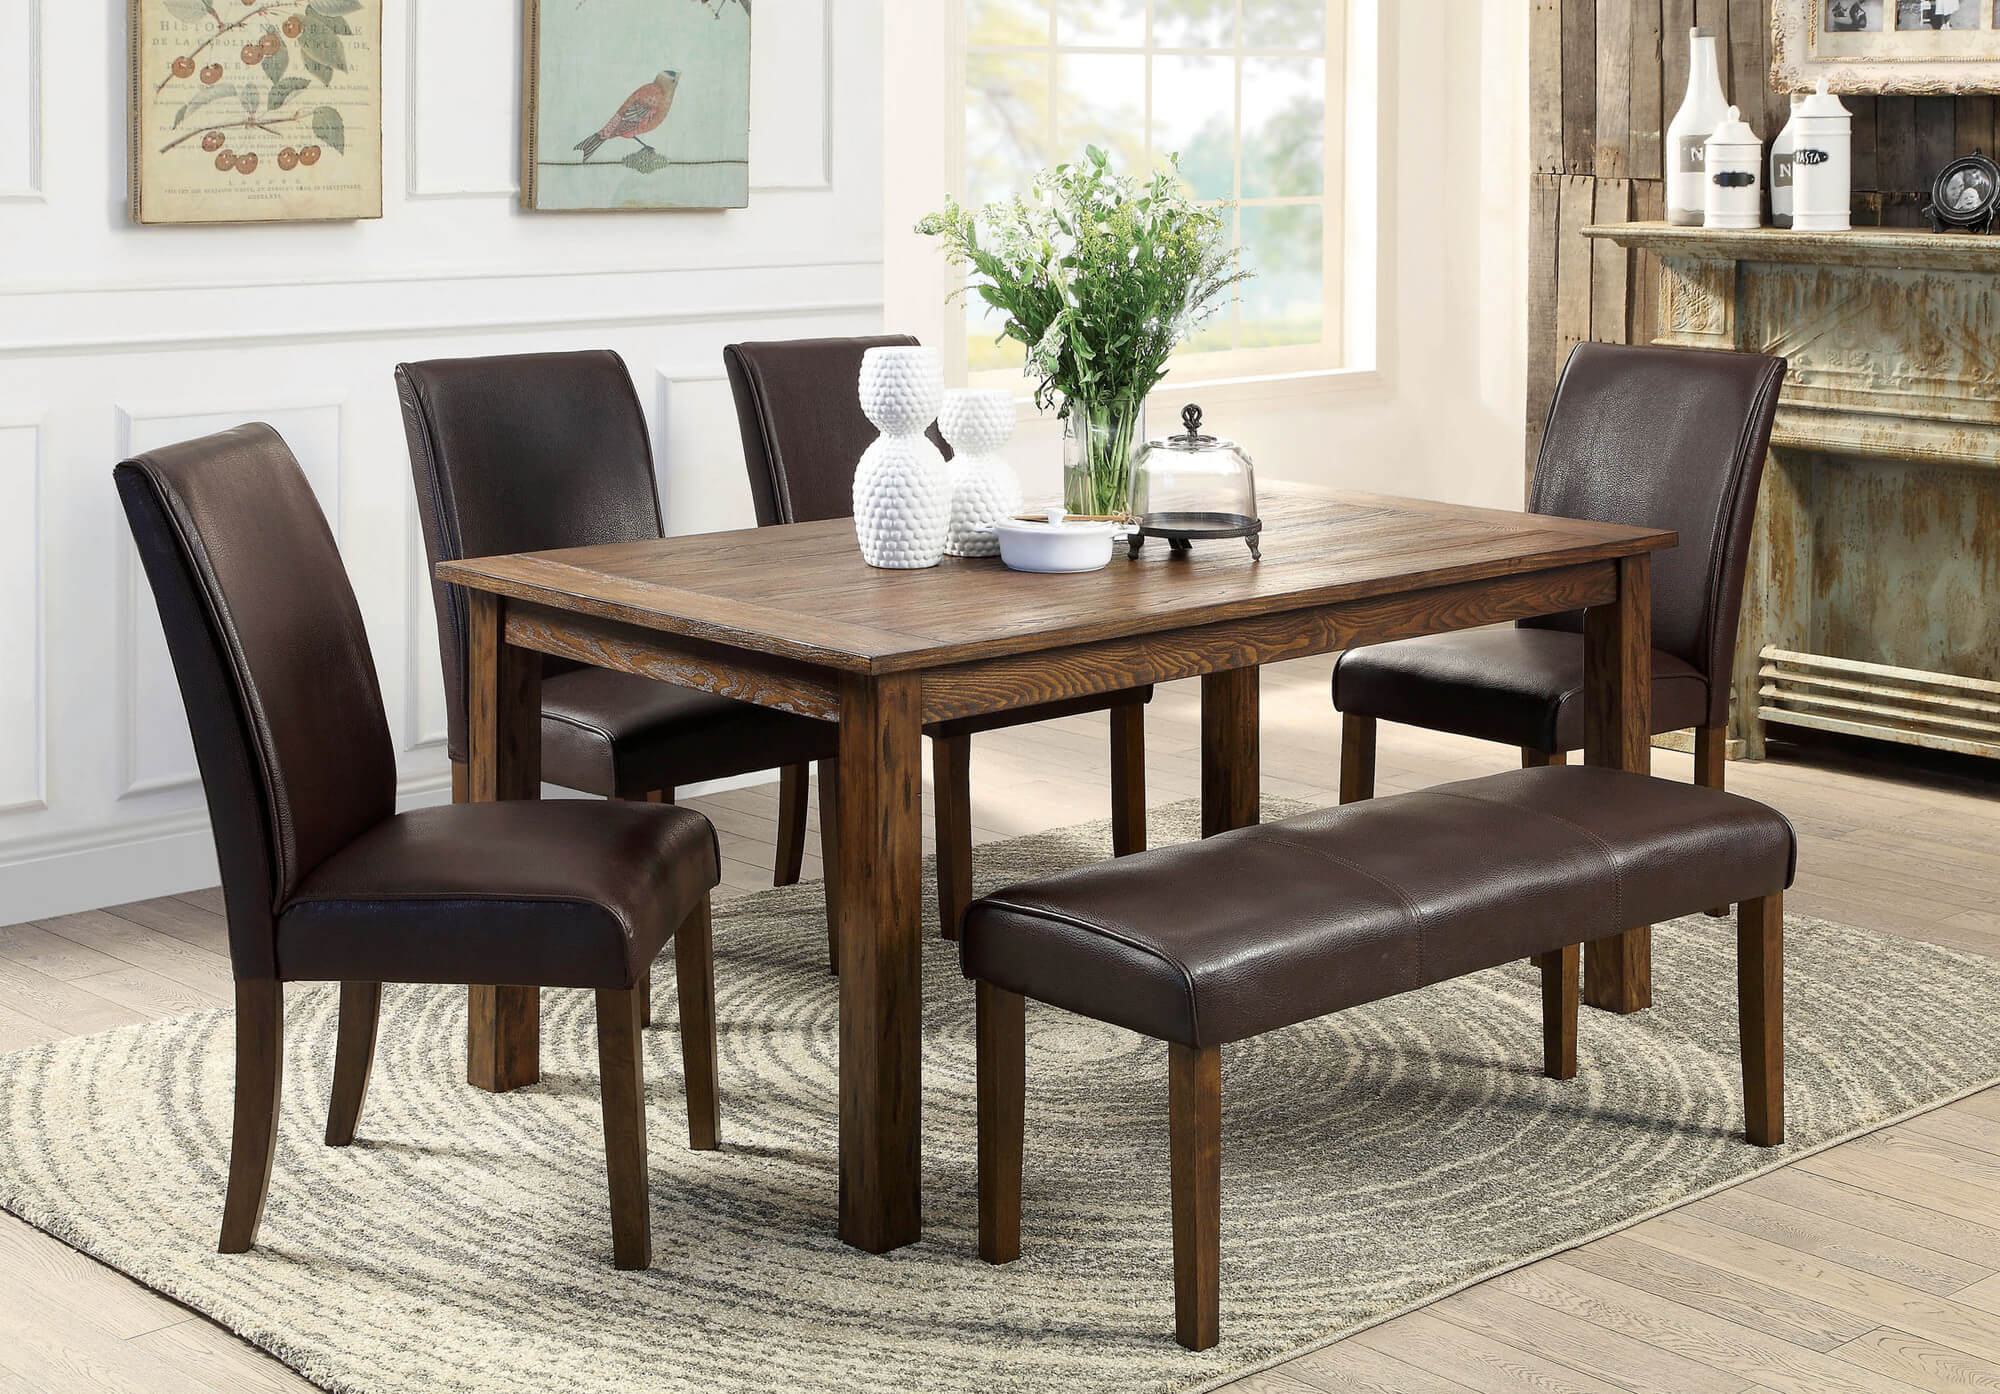 Rectangle dining table design - Here S A Rustic Rectangle Dining Table With Fully Cushioned Chairs And Bench This Look Works